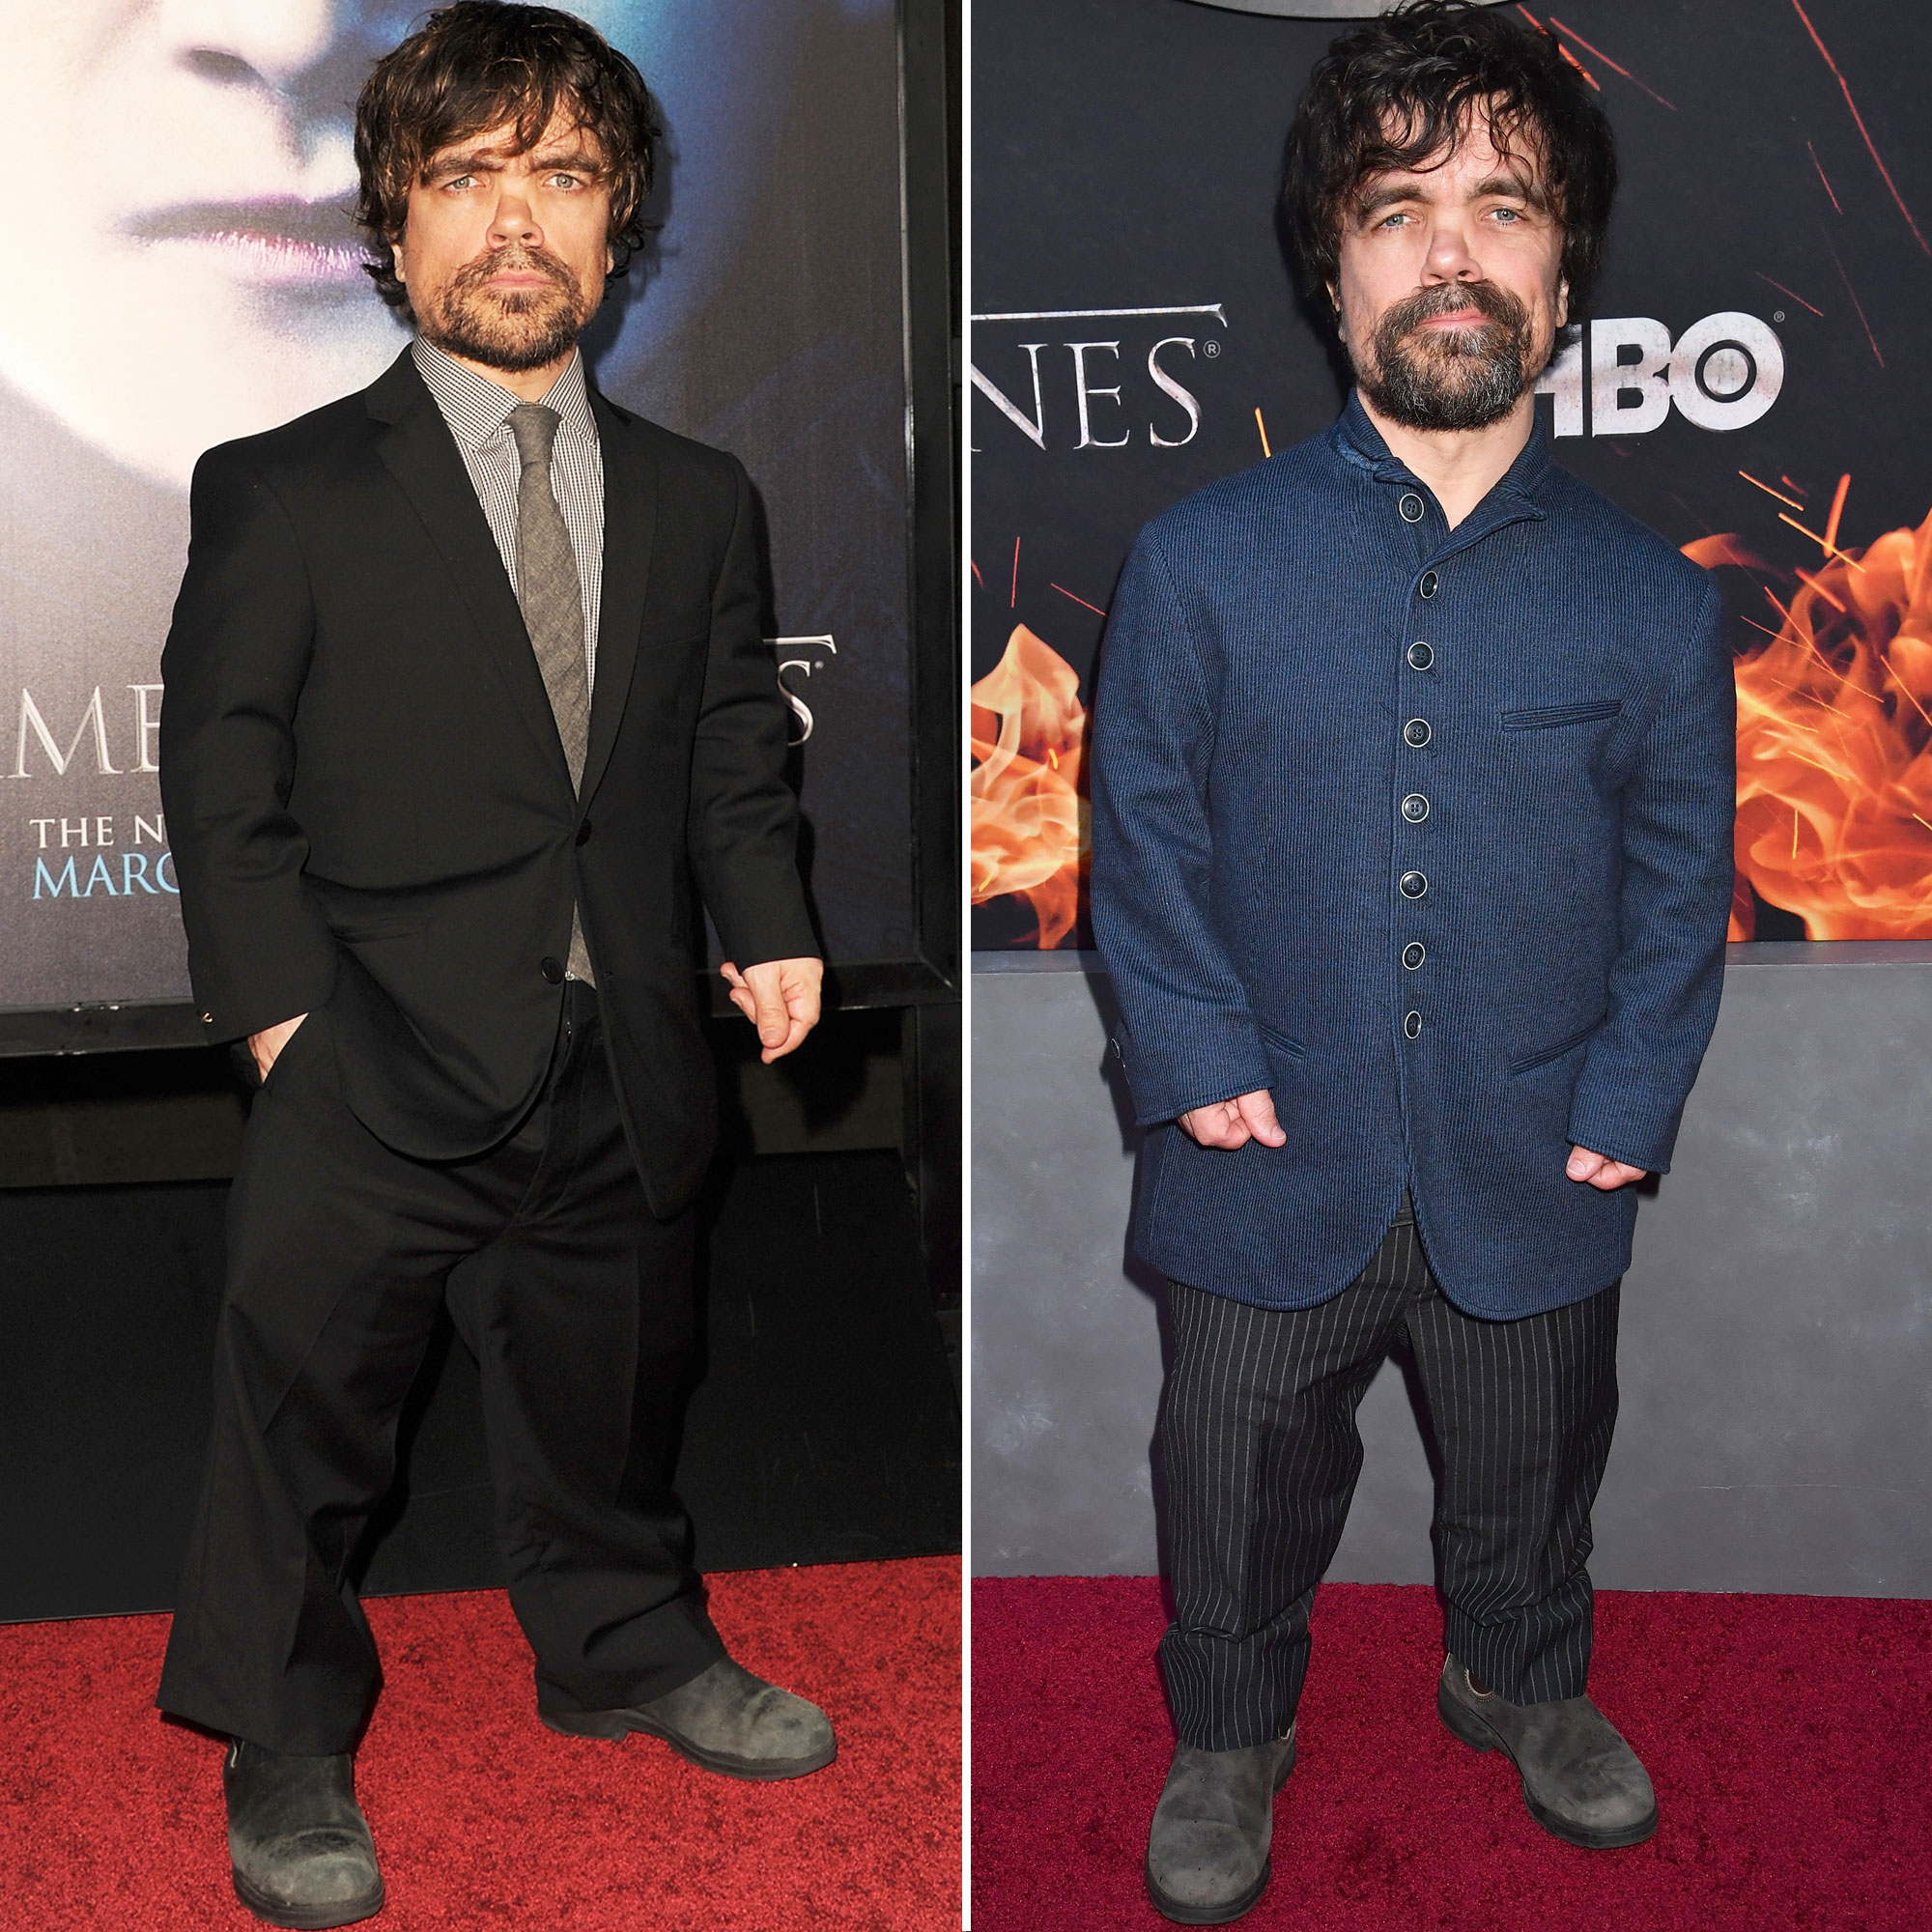 Peter Dinklage 'Game of Thrones' Stars: From the First 'GoT' Red Carpet Premiere to the Last - The New Jersey-born actor stole the spotlight from the inception of the fantasy drama. (Watch when he makes his entrance at any Comic-Con and you'll see.)